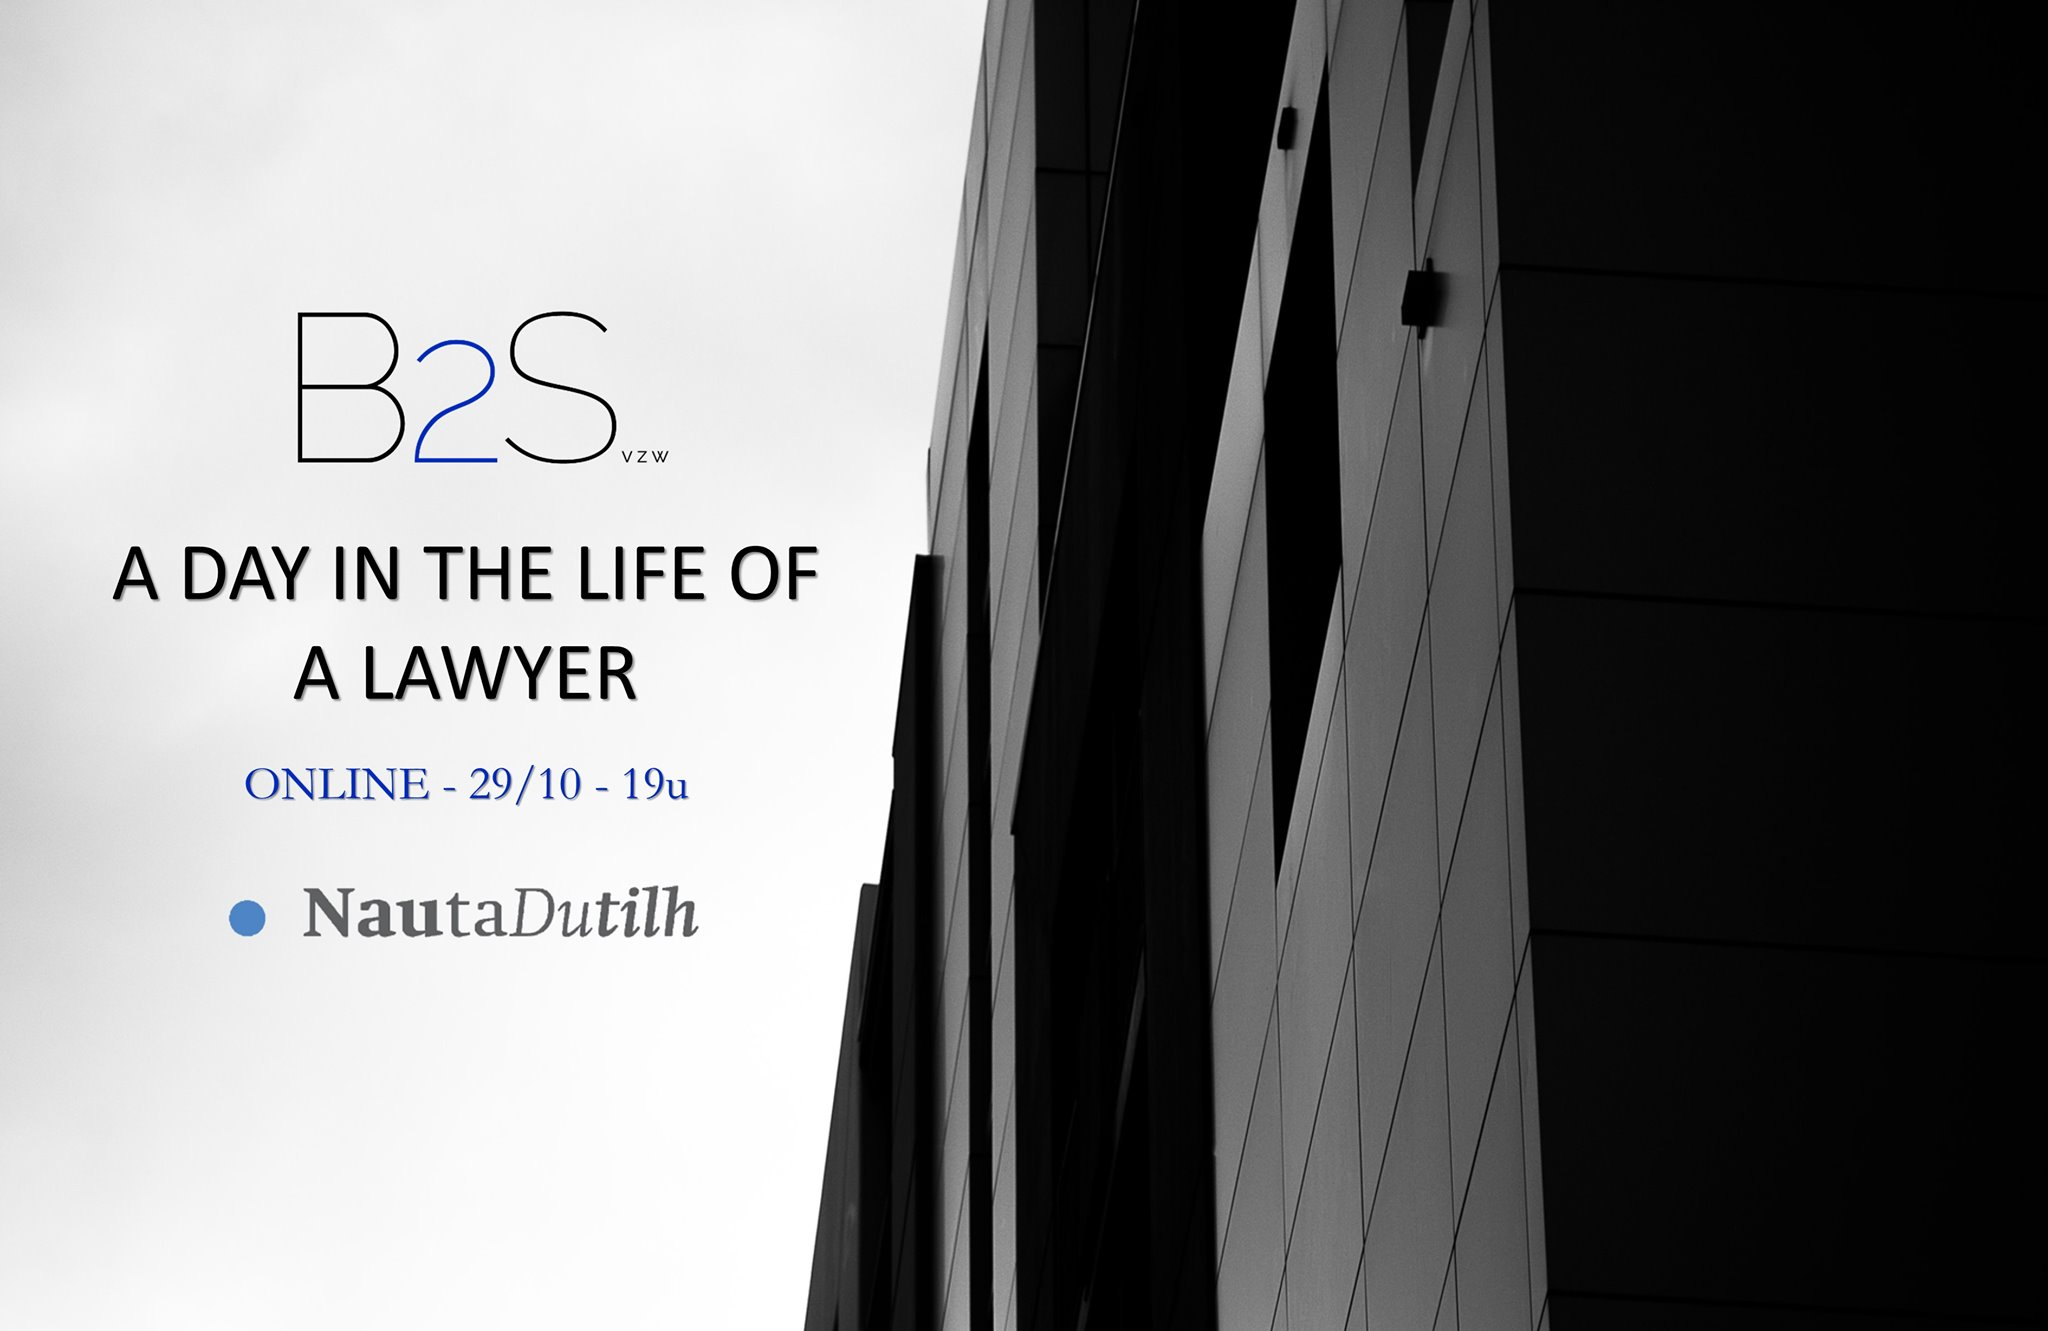 B2S Antwerpen - a day in the life of a lawyer